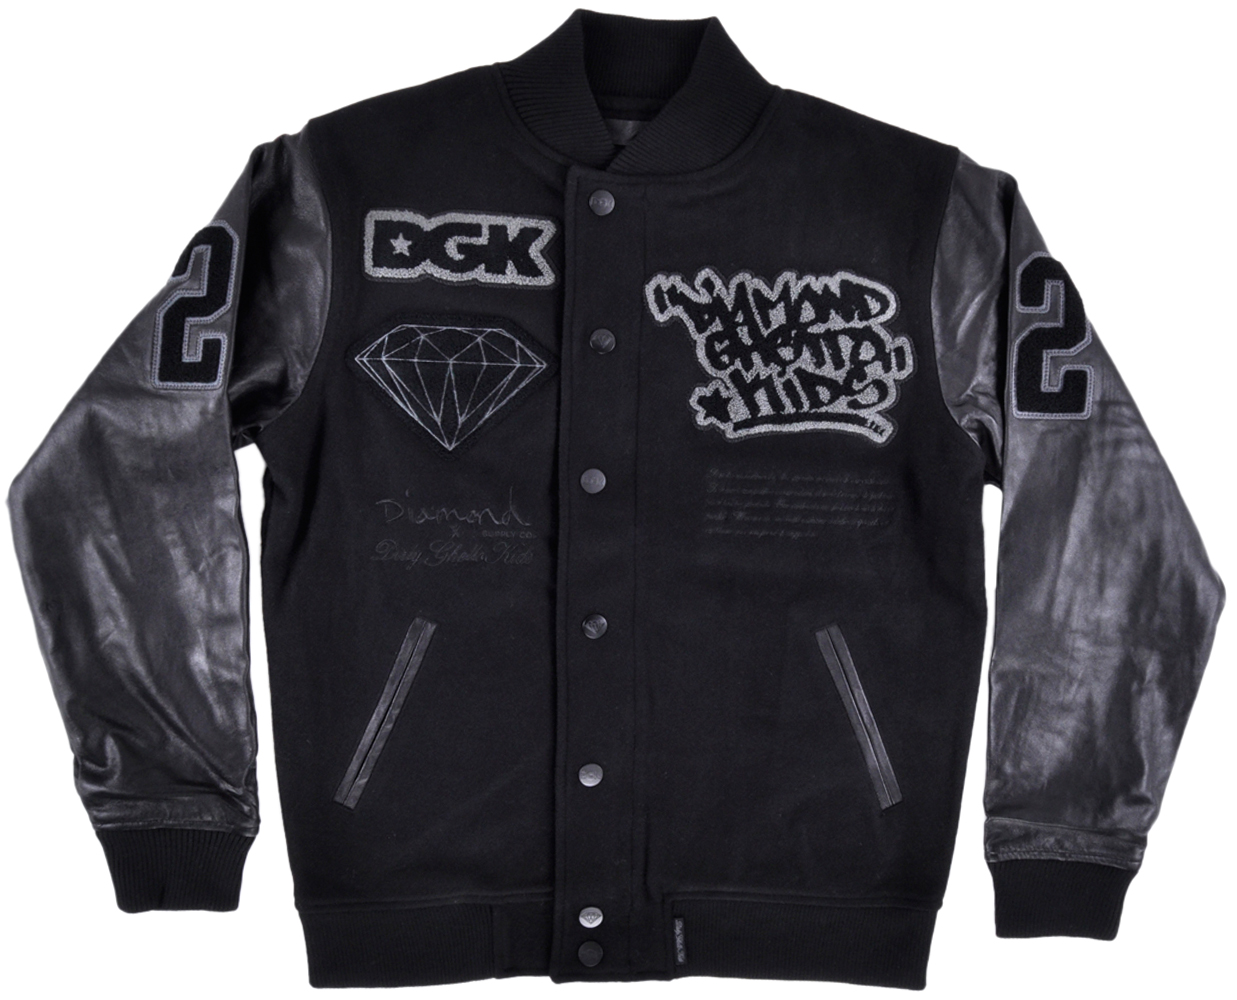 Diamond Supply Co x DGK Letterman Jacket Wool Leather Mens Skate Outerwear by DIAMOND SUPPLY CO X DGK